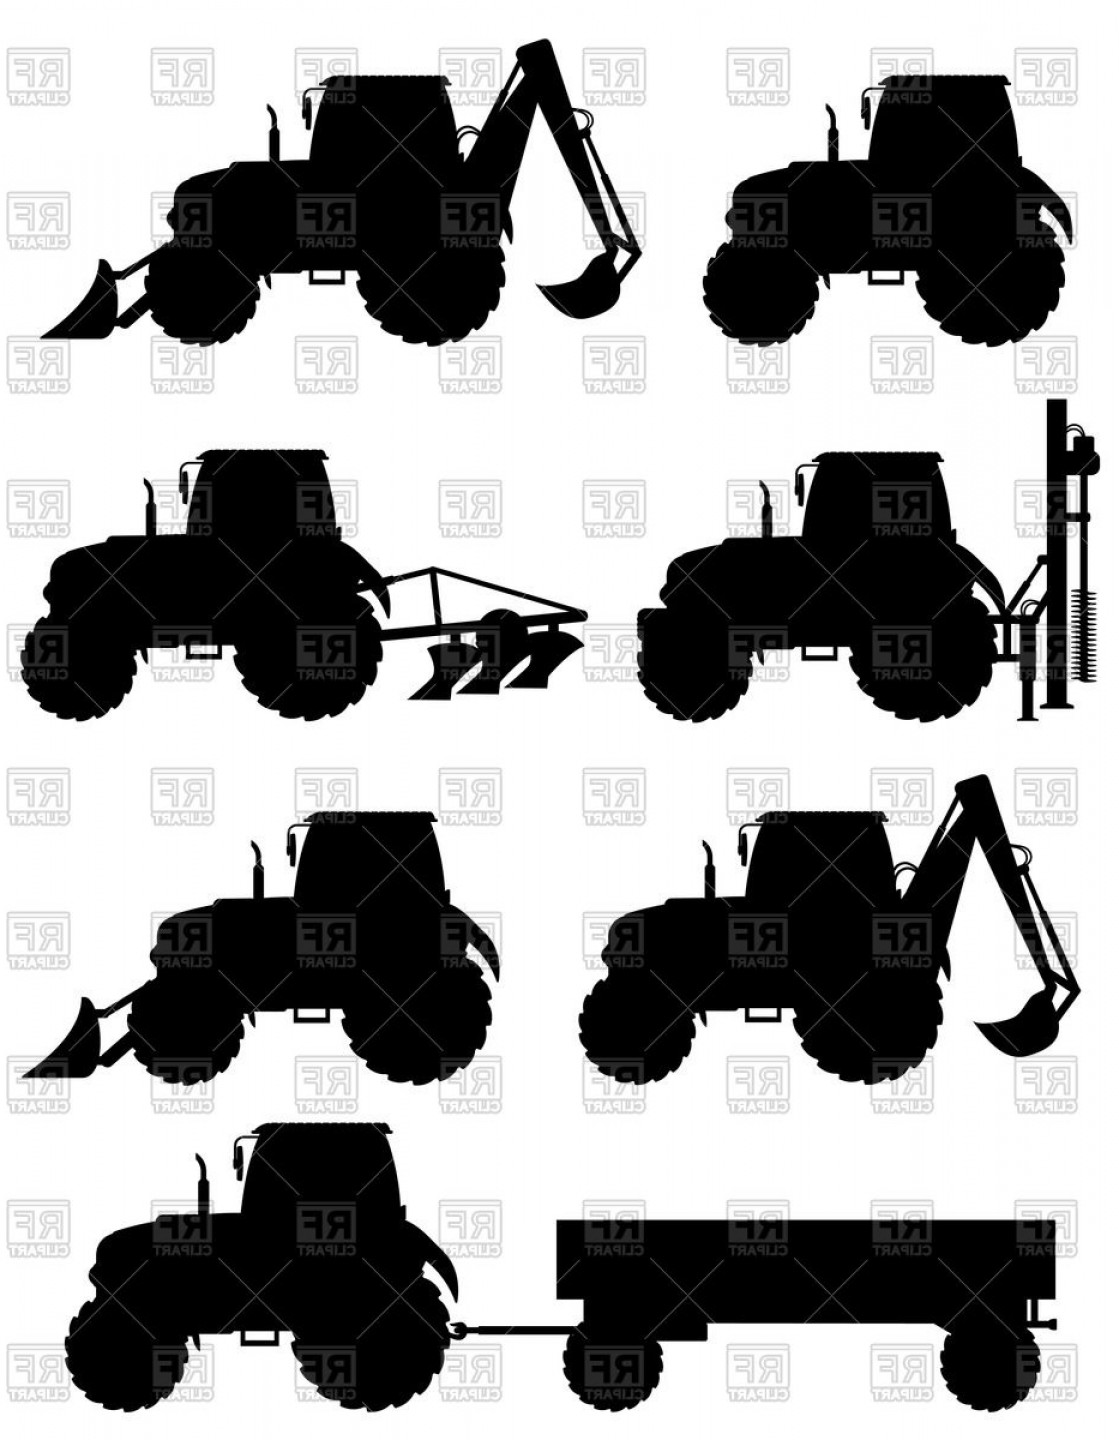 Tractor Silhouette Vector Art: Silhouettes Of Tractors Vector Clipart